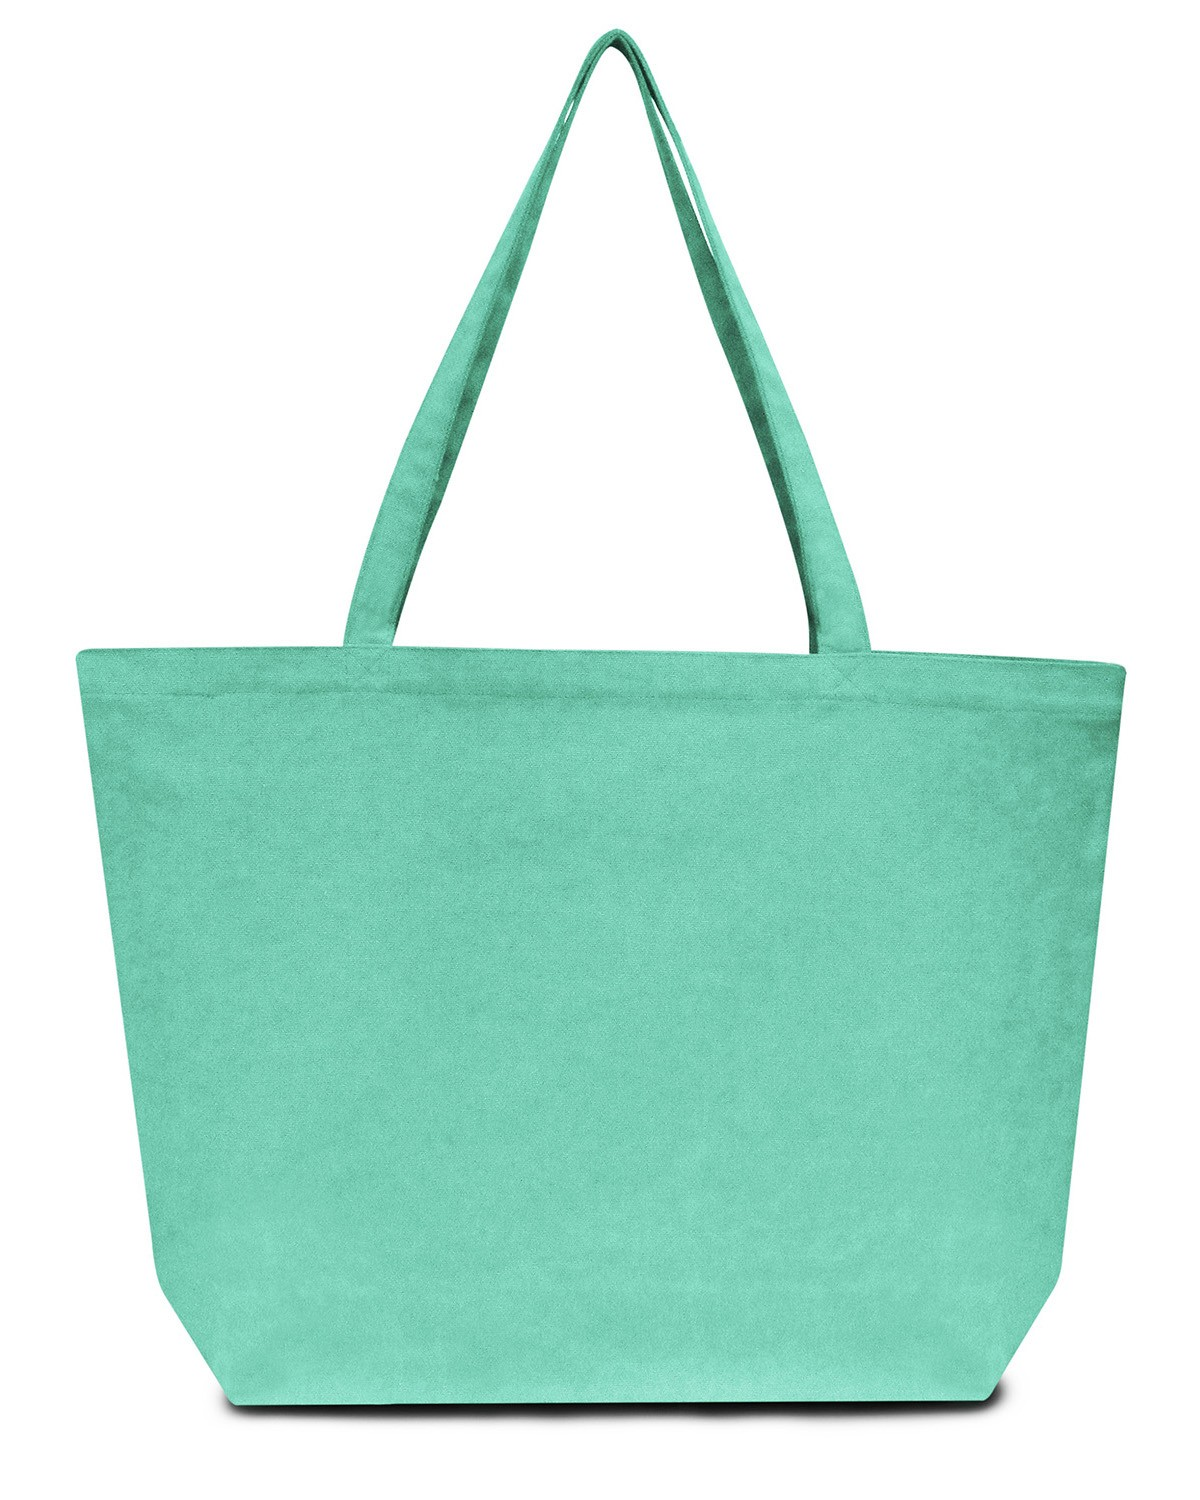 LB8507 Liberty Bags SEA GLASS GREEN